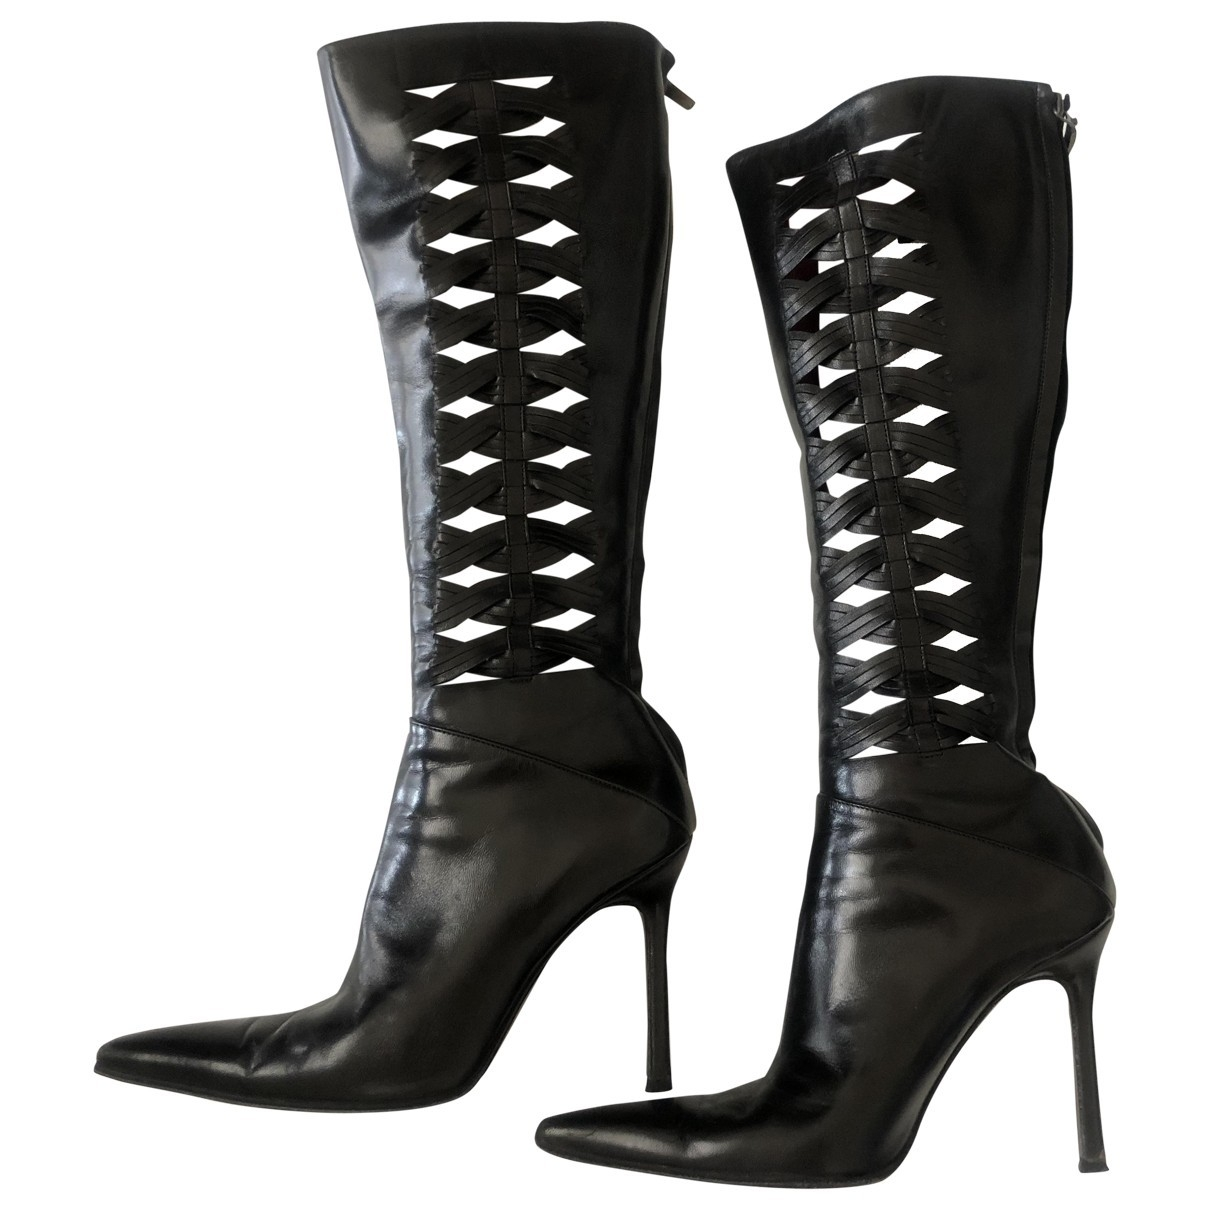 Cesare Paciotti \N Black Leather Boots for Women 36 EU